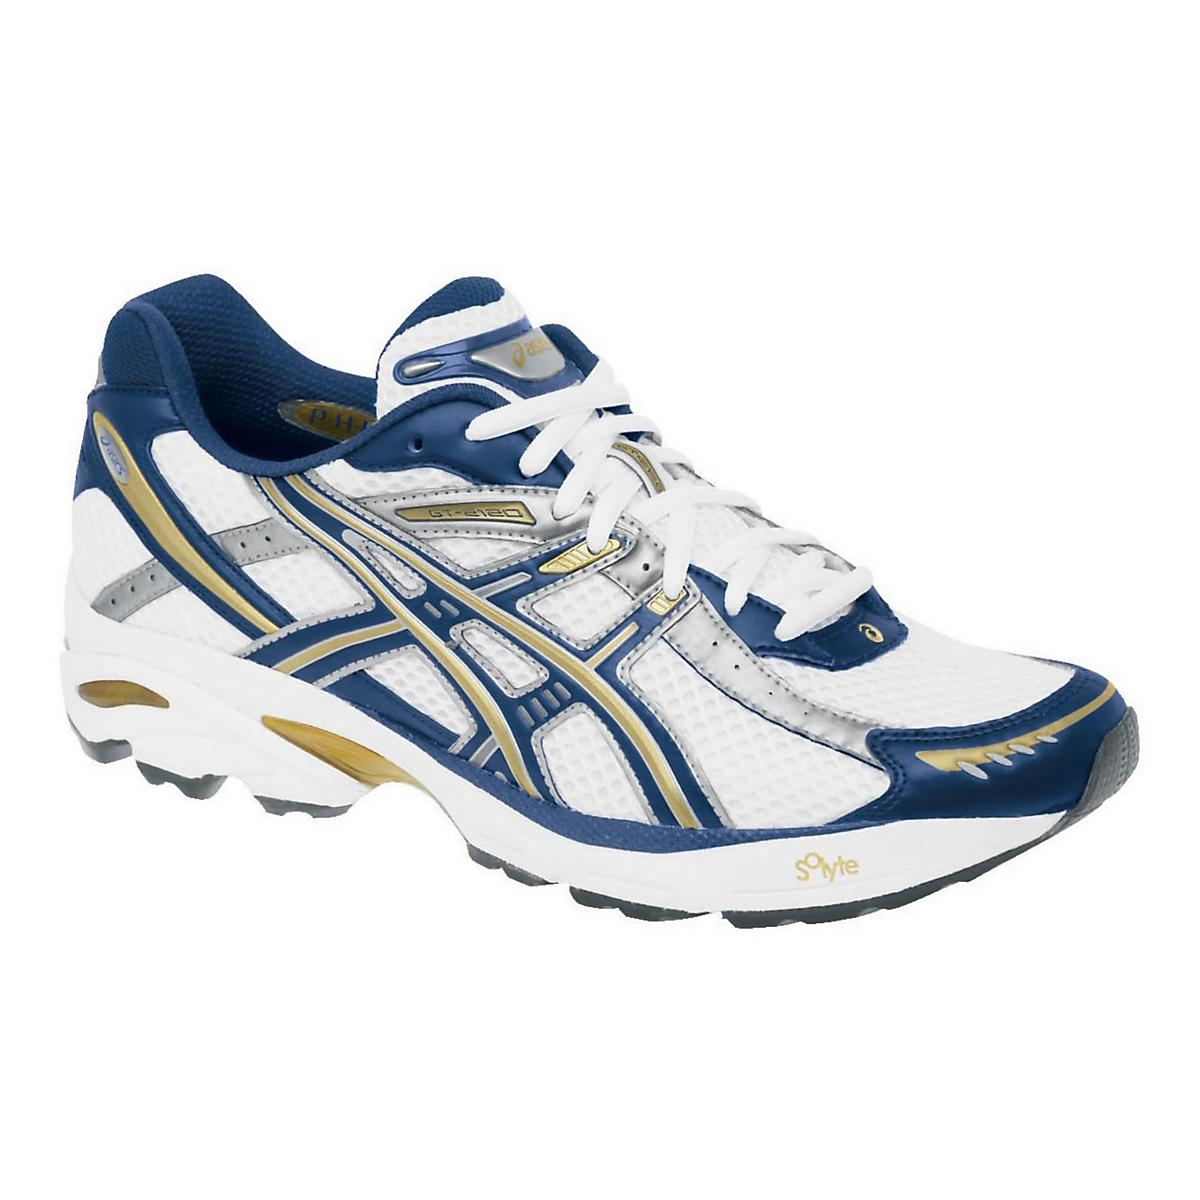 Womens Cross Country Shoes